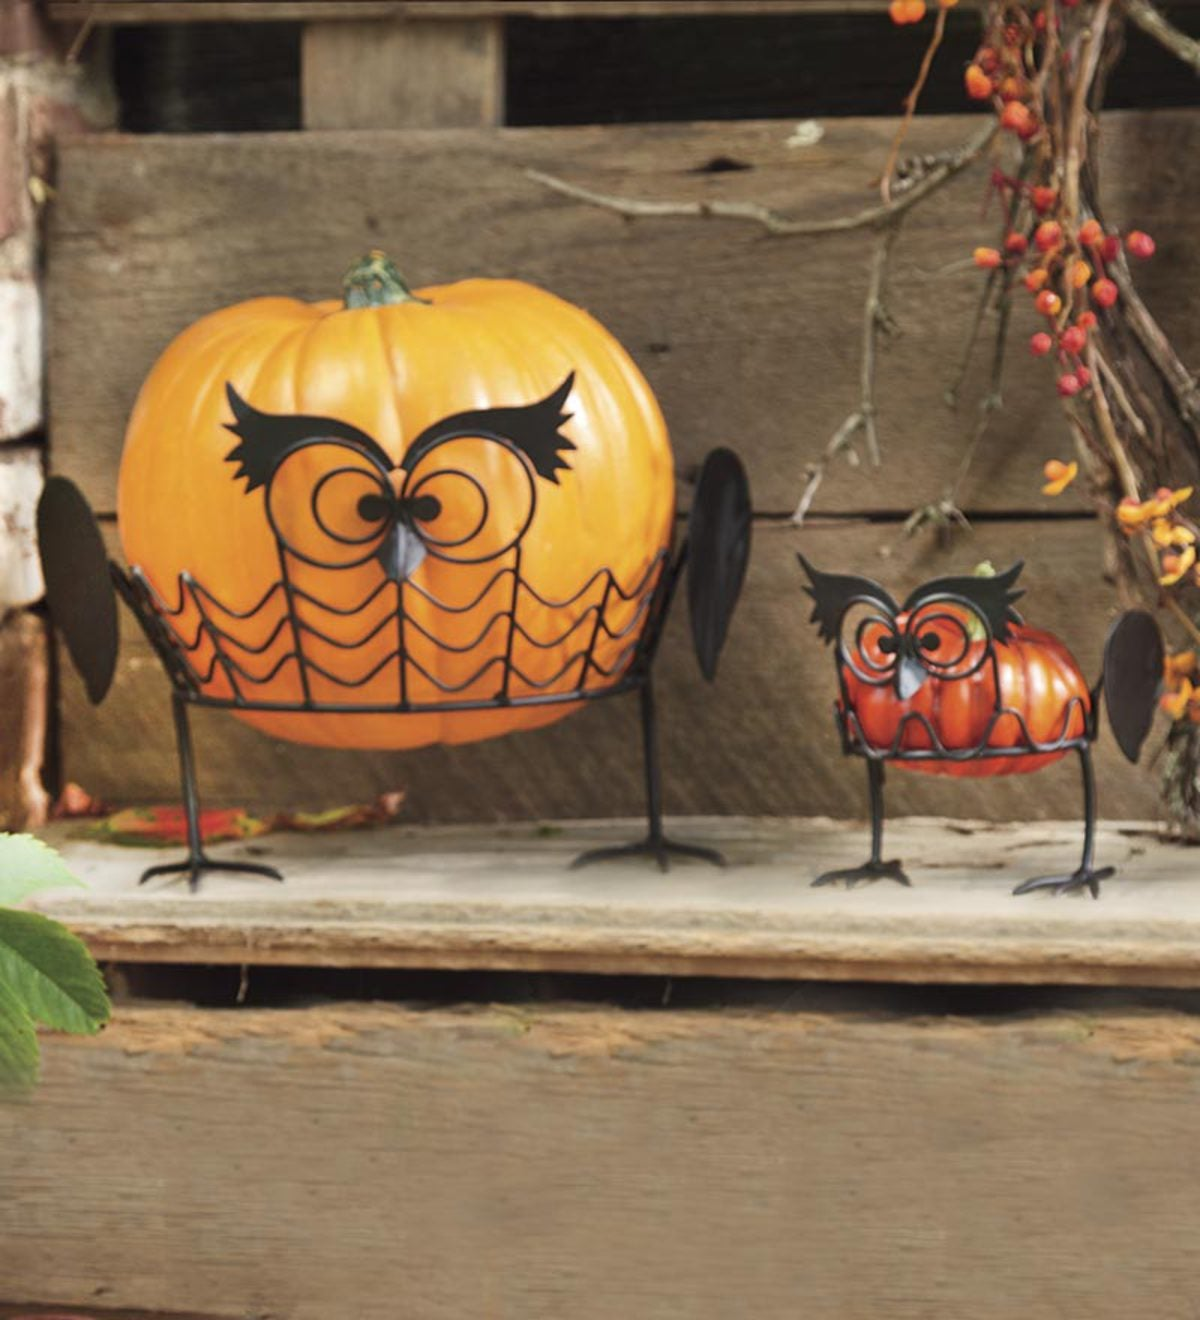 Set 2 Owl Pumpkin Holders